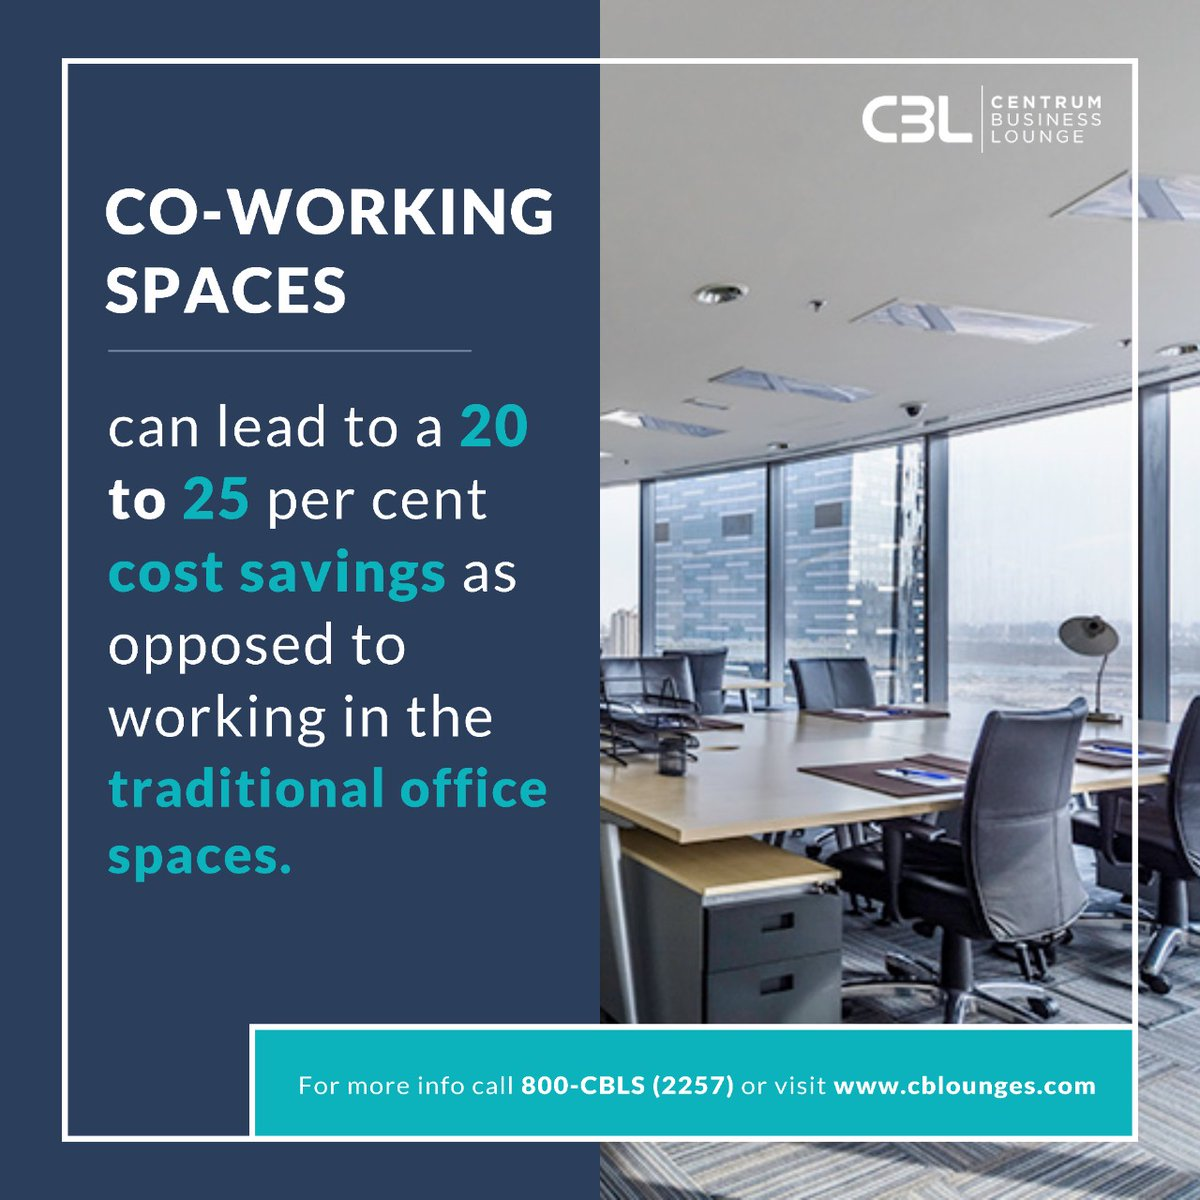 Coworking fact of the day!  For more info : 📞Call 800-CBLS(2257) 🌐Visit https://t.co/gx1yJGVYgJ  #lounge #businesslounge #loungespace #eventspace #eventspaces #venuewithaview #dubai #abudhabi #cblounges #coworkingspace #coworking #coworkinglife #meetingroom #servicedoffice https://t.co/OkuHQktS2j